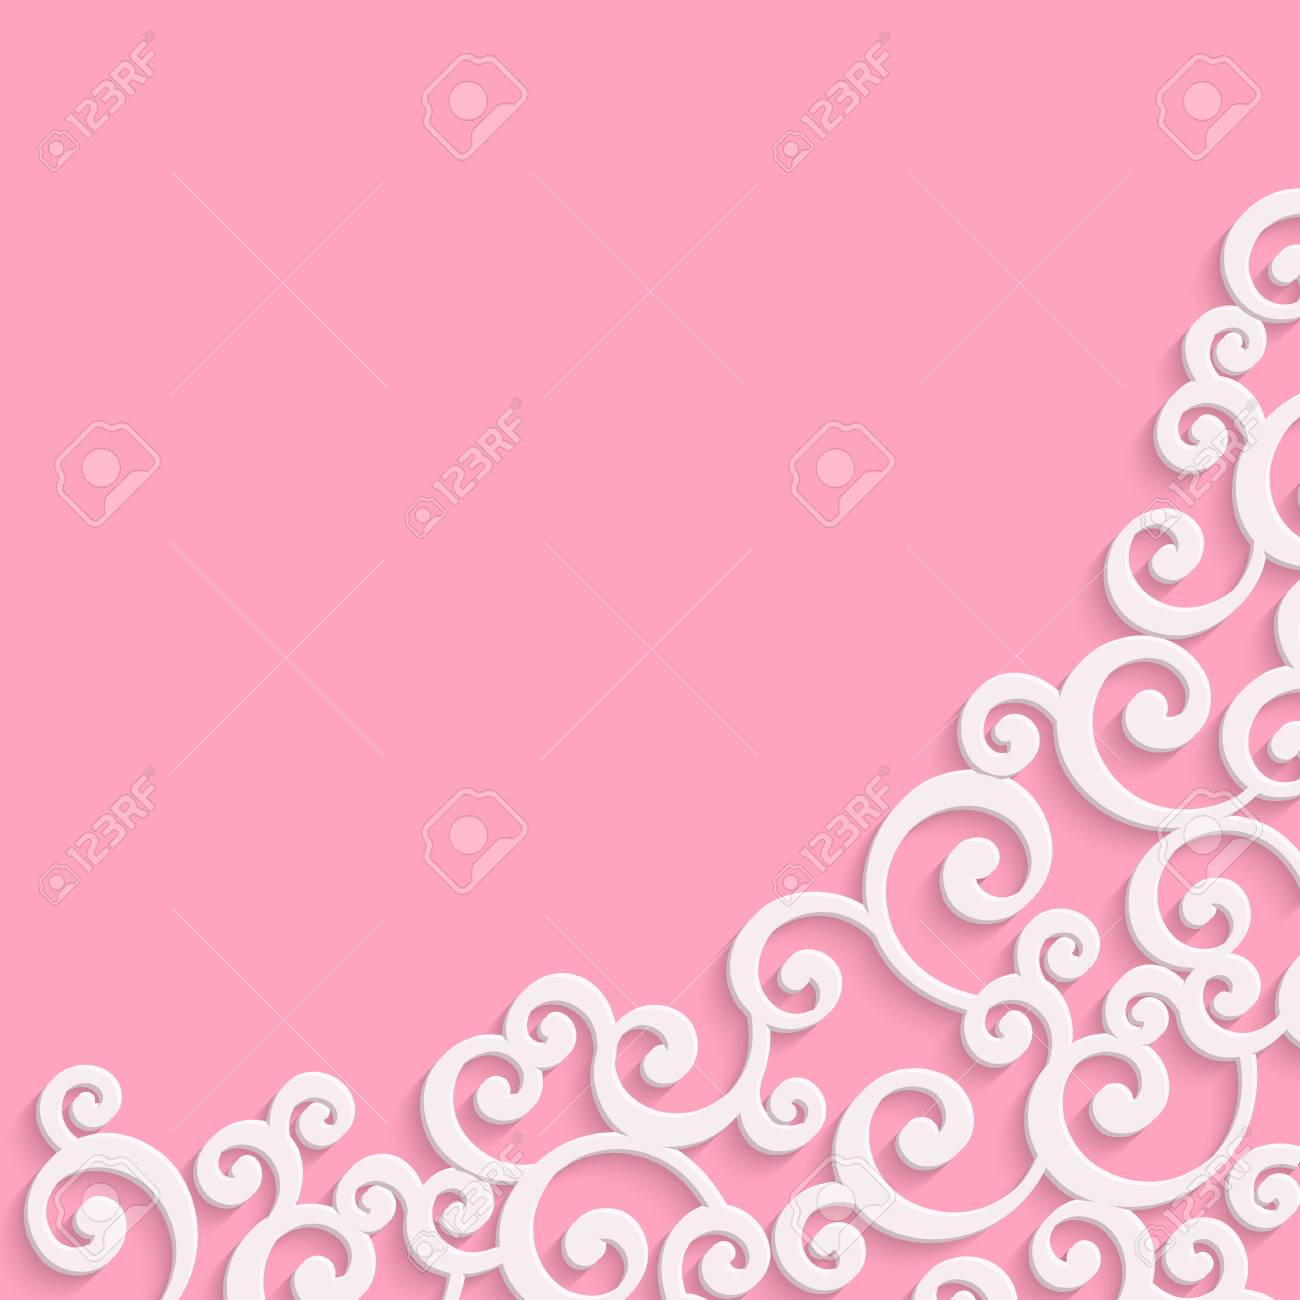 pink 3d floral swirl background with curl pattern. abstract vector